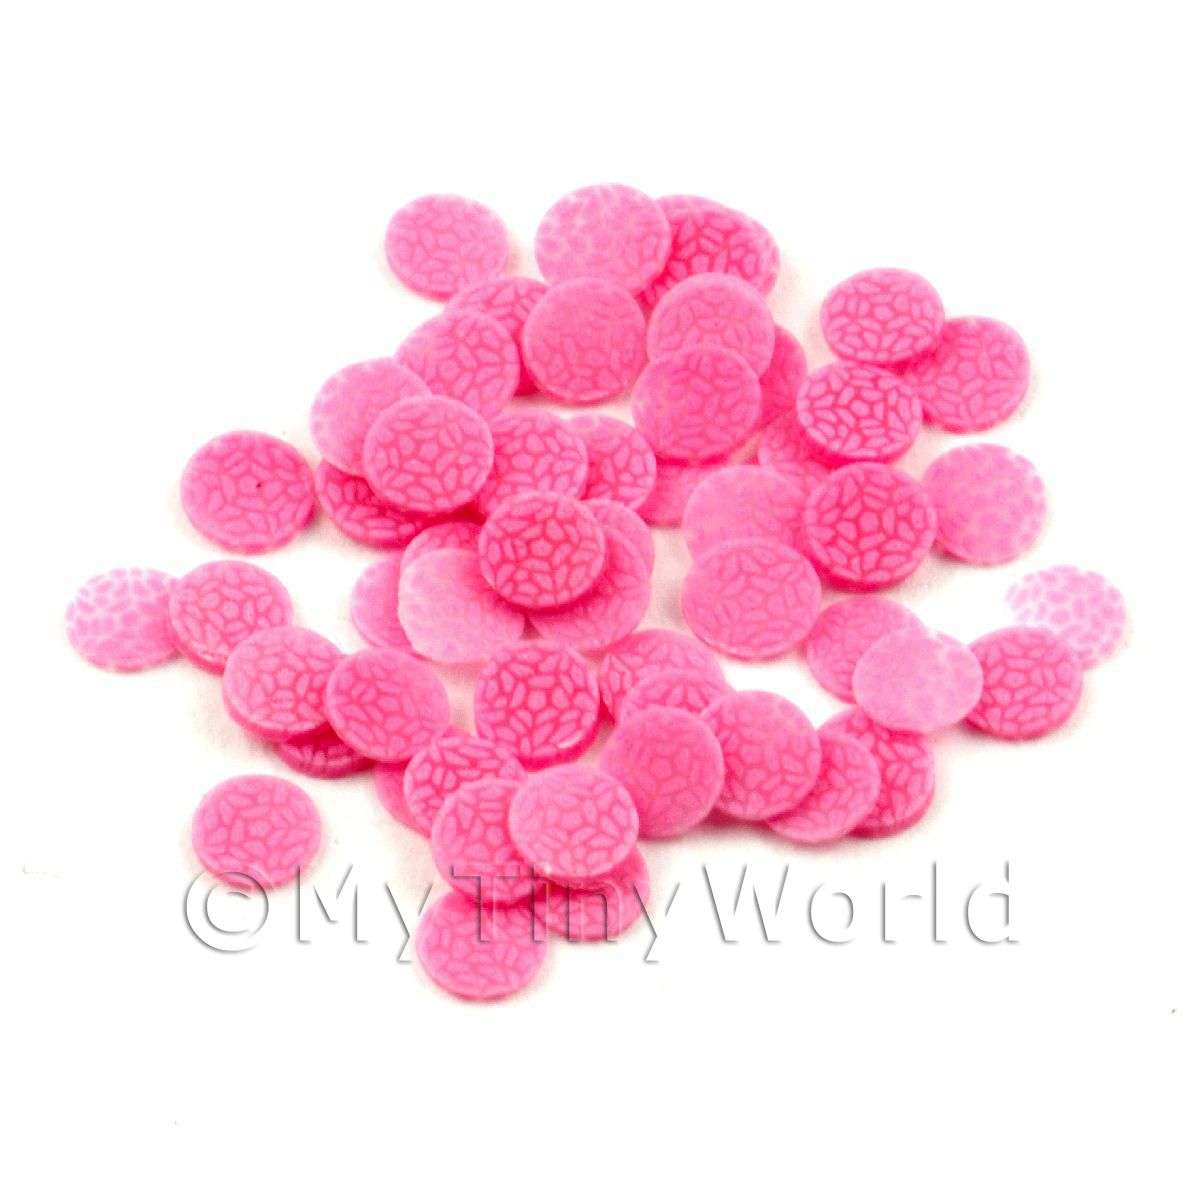 50 All Sorts Pink Jelly Cane Slices - Nail Art (11NS43)